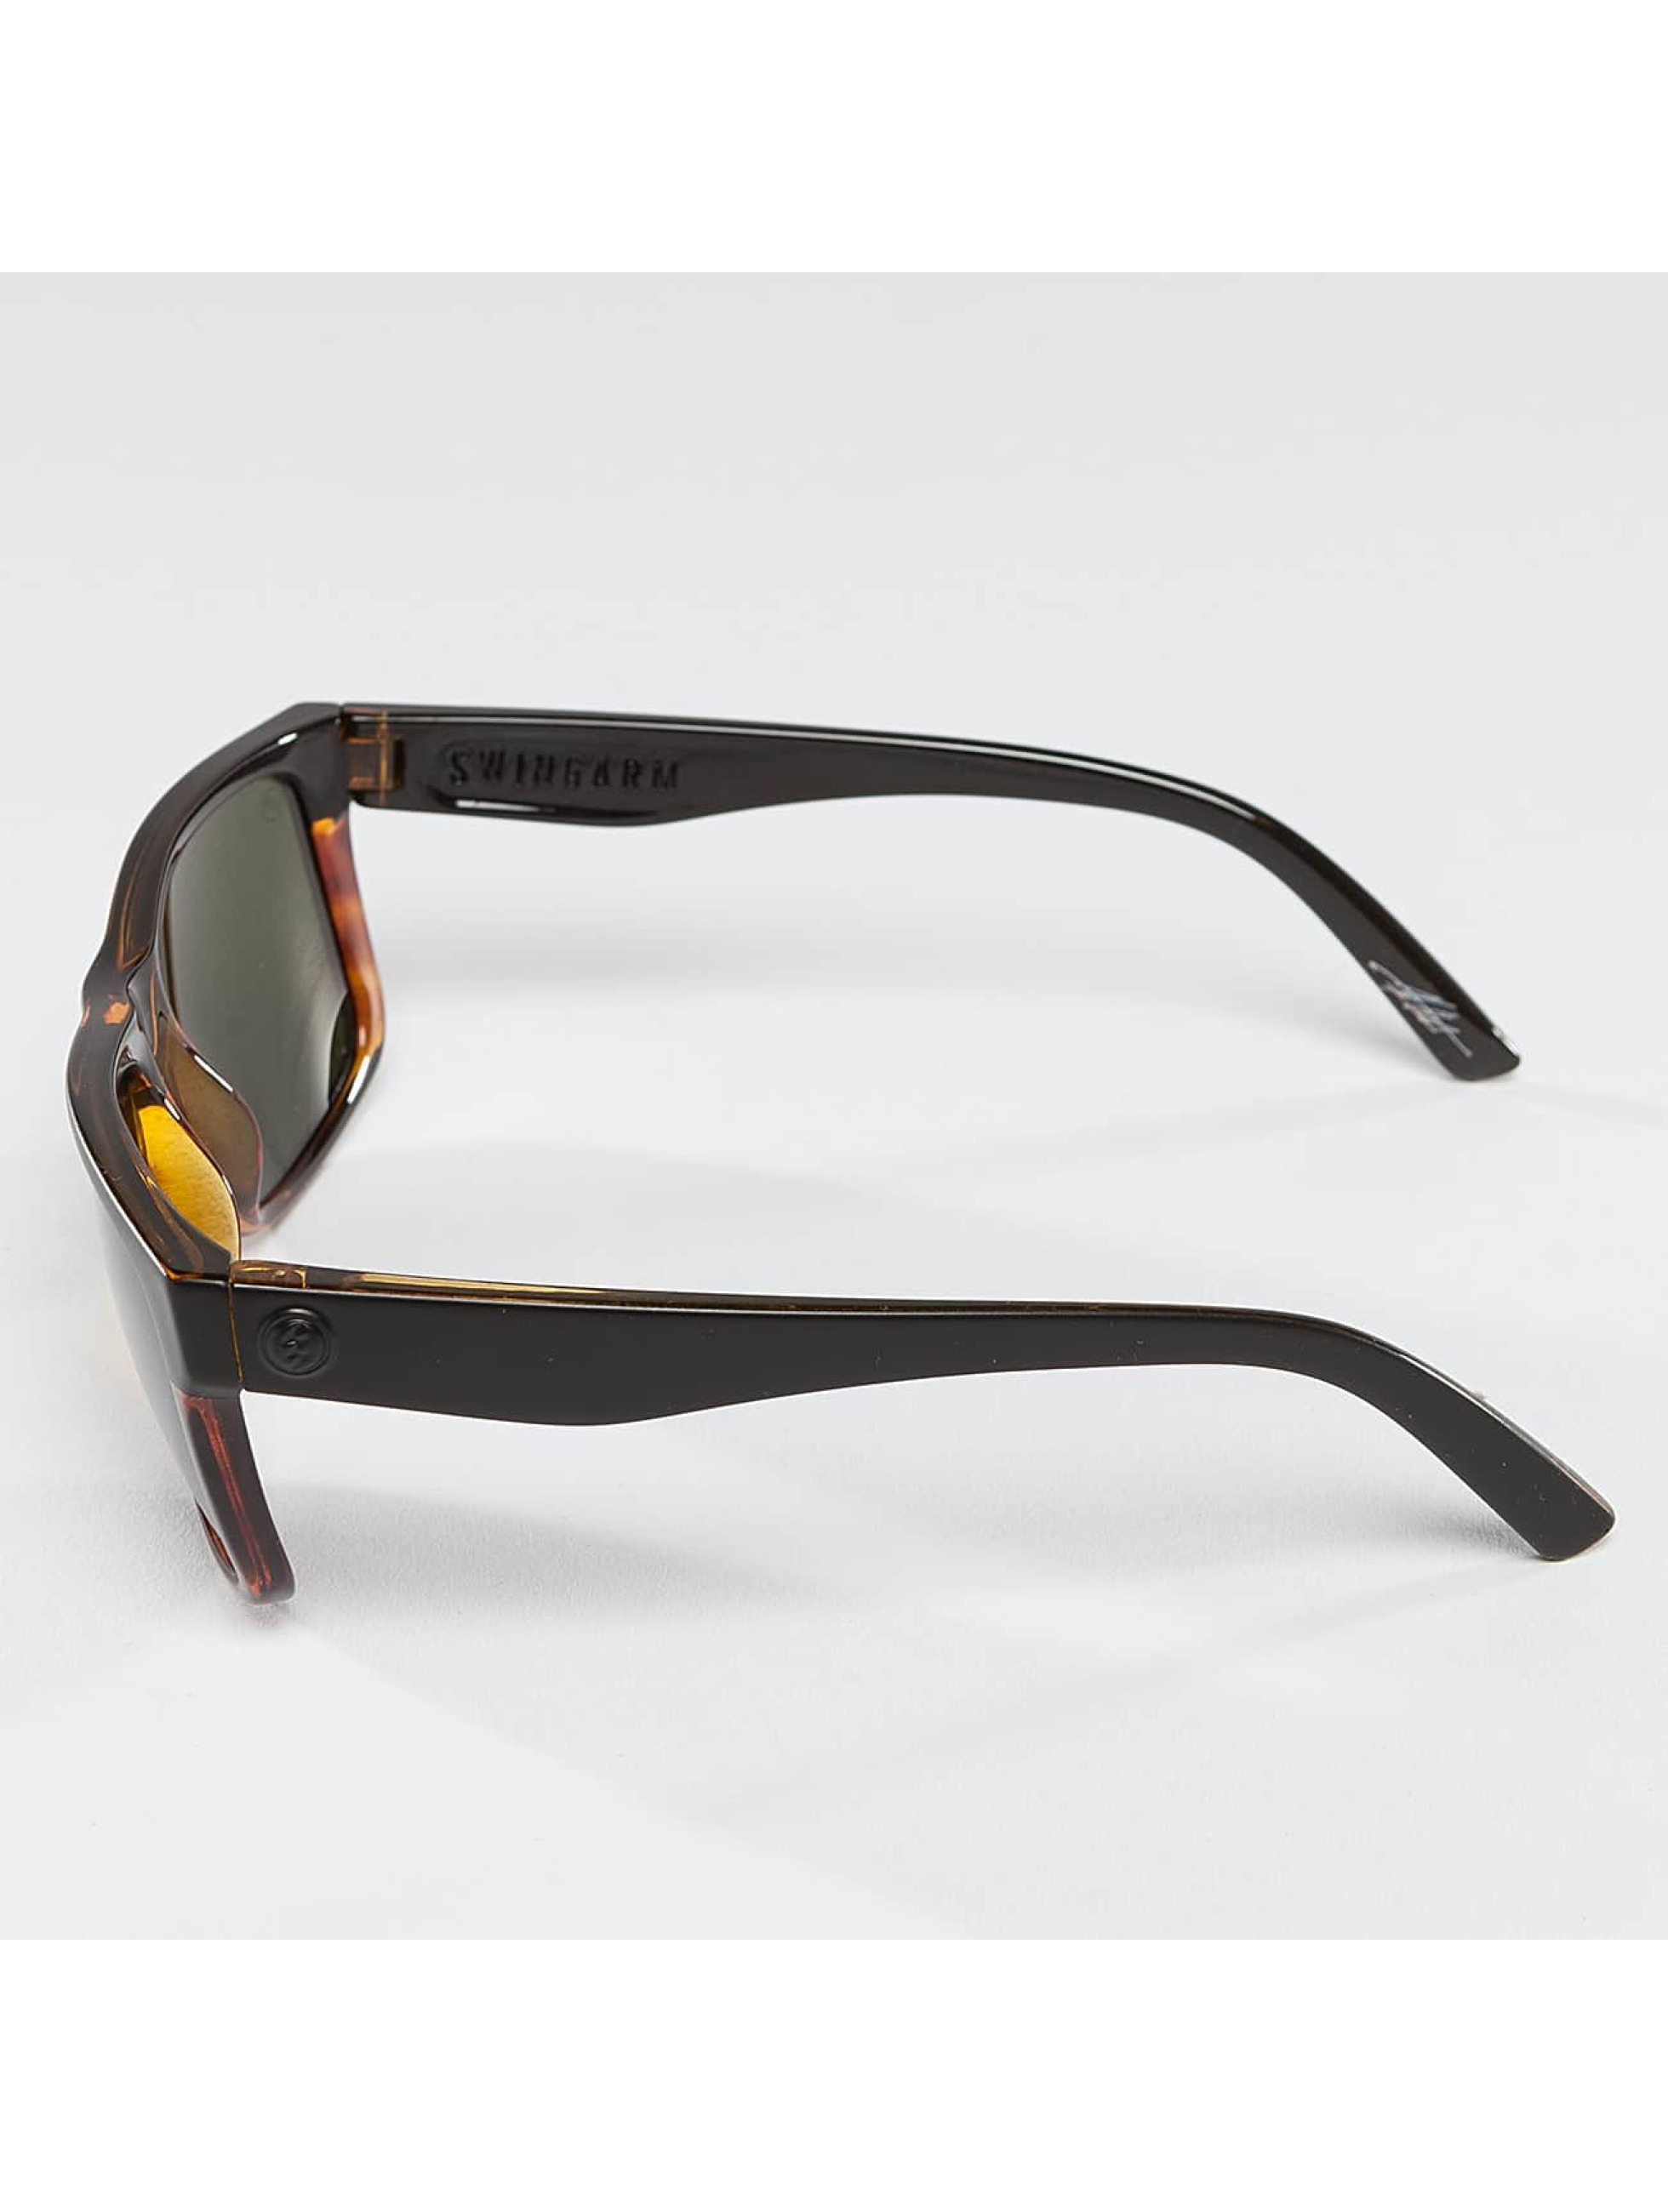 Electric Sonnenbrille Swingarm braun